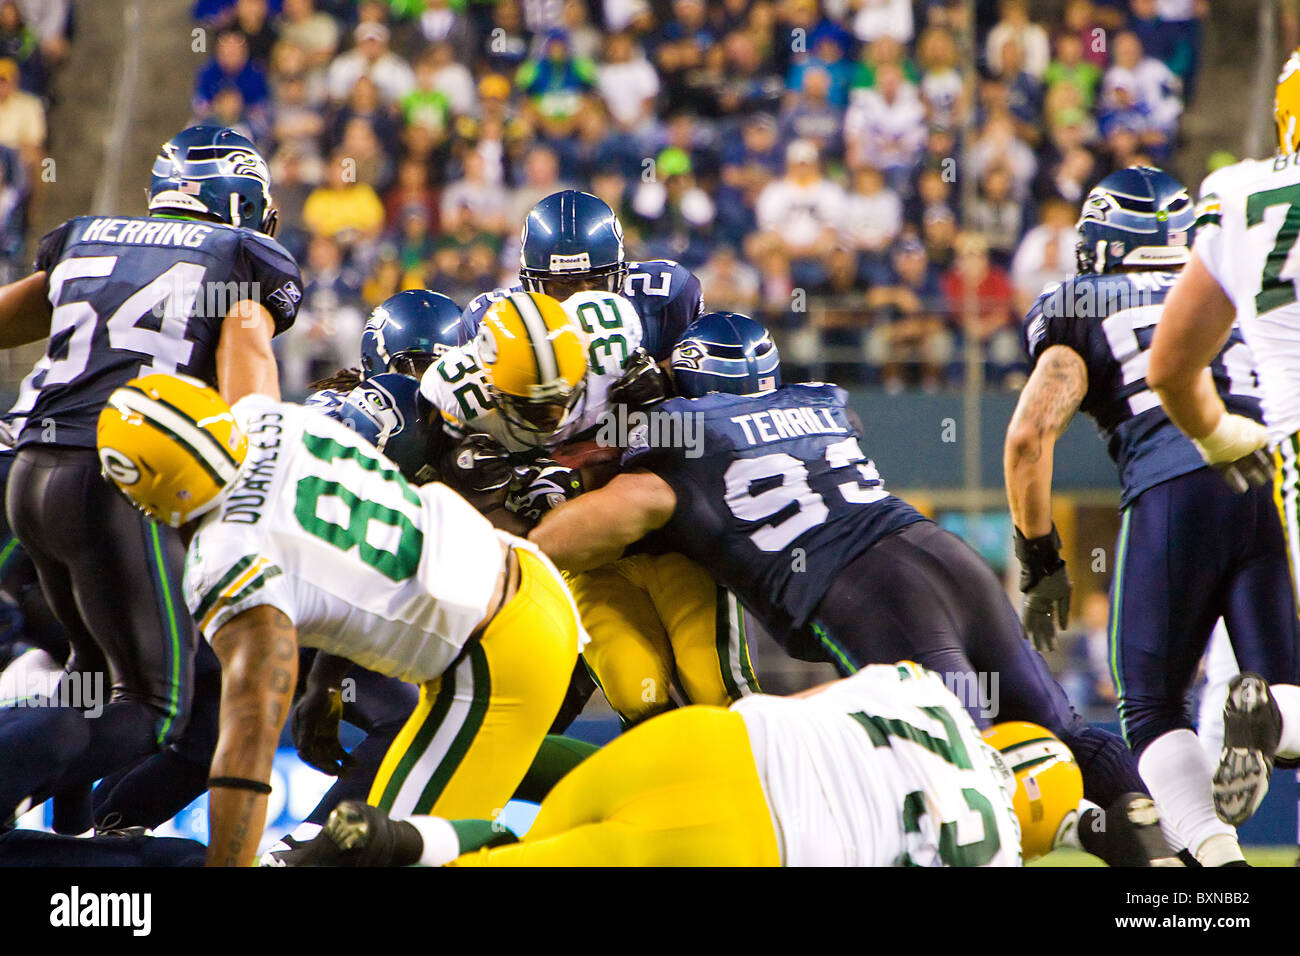 NFL teams the Seattle Seahawks and the Green Bay Packers playing a football game - Stock Image